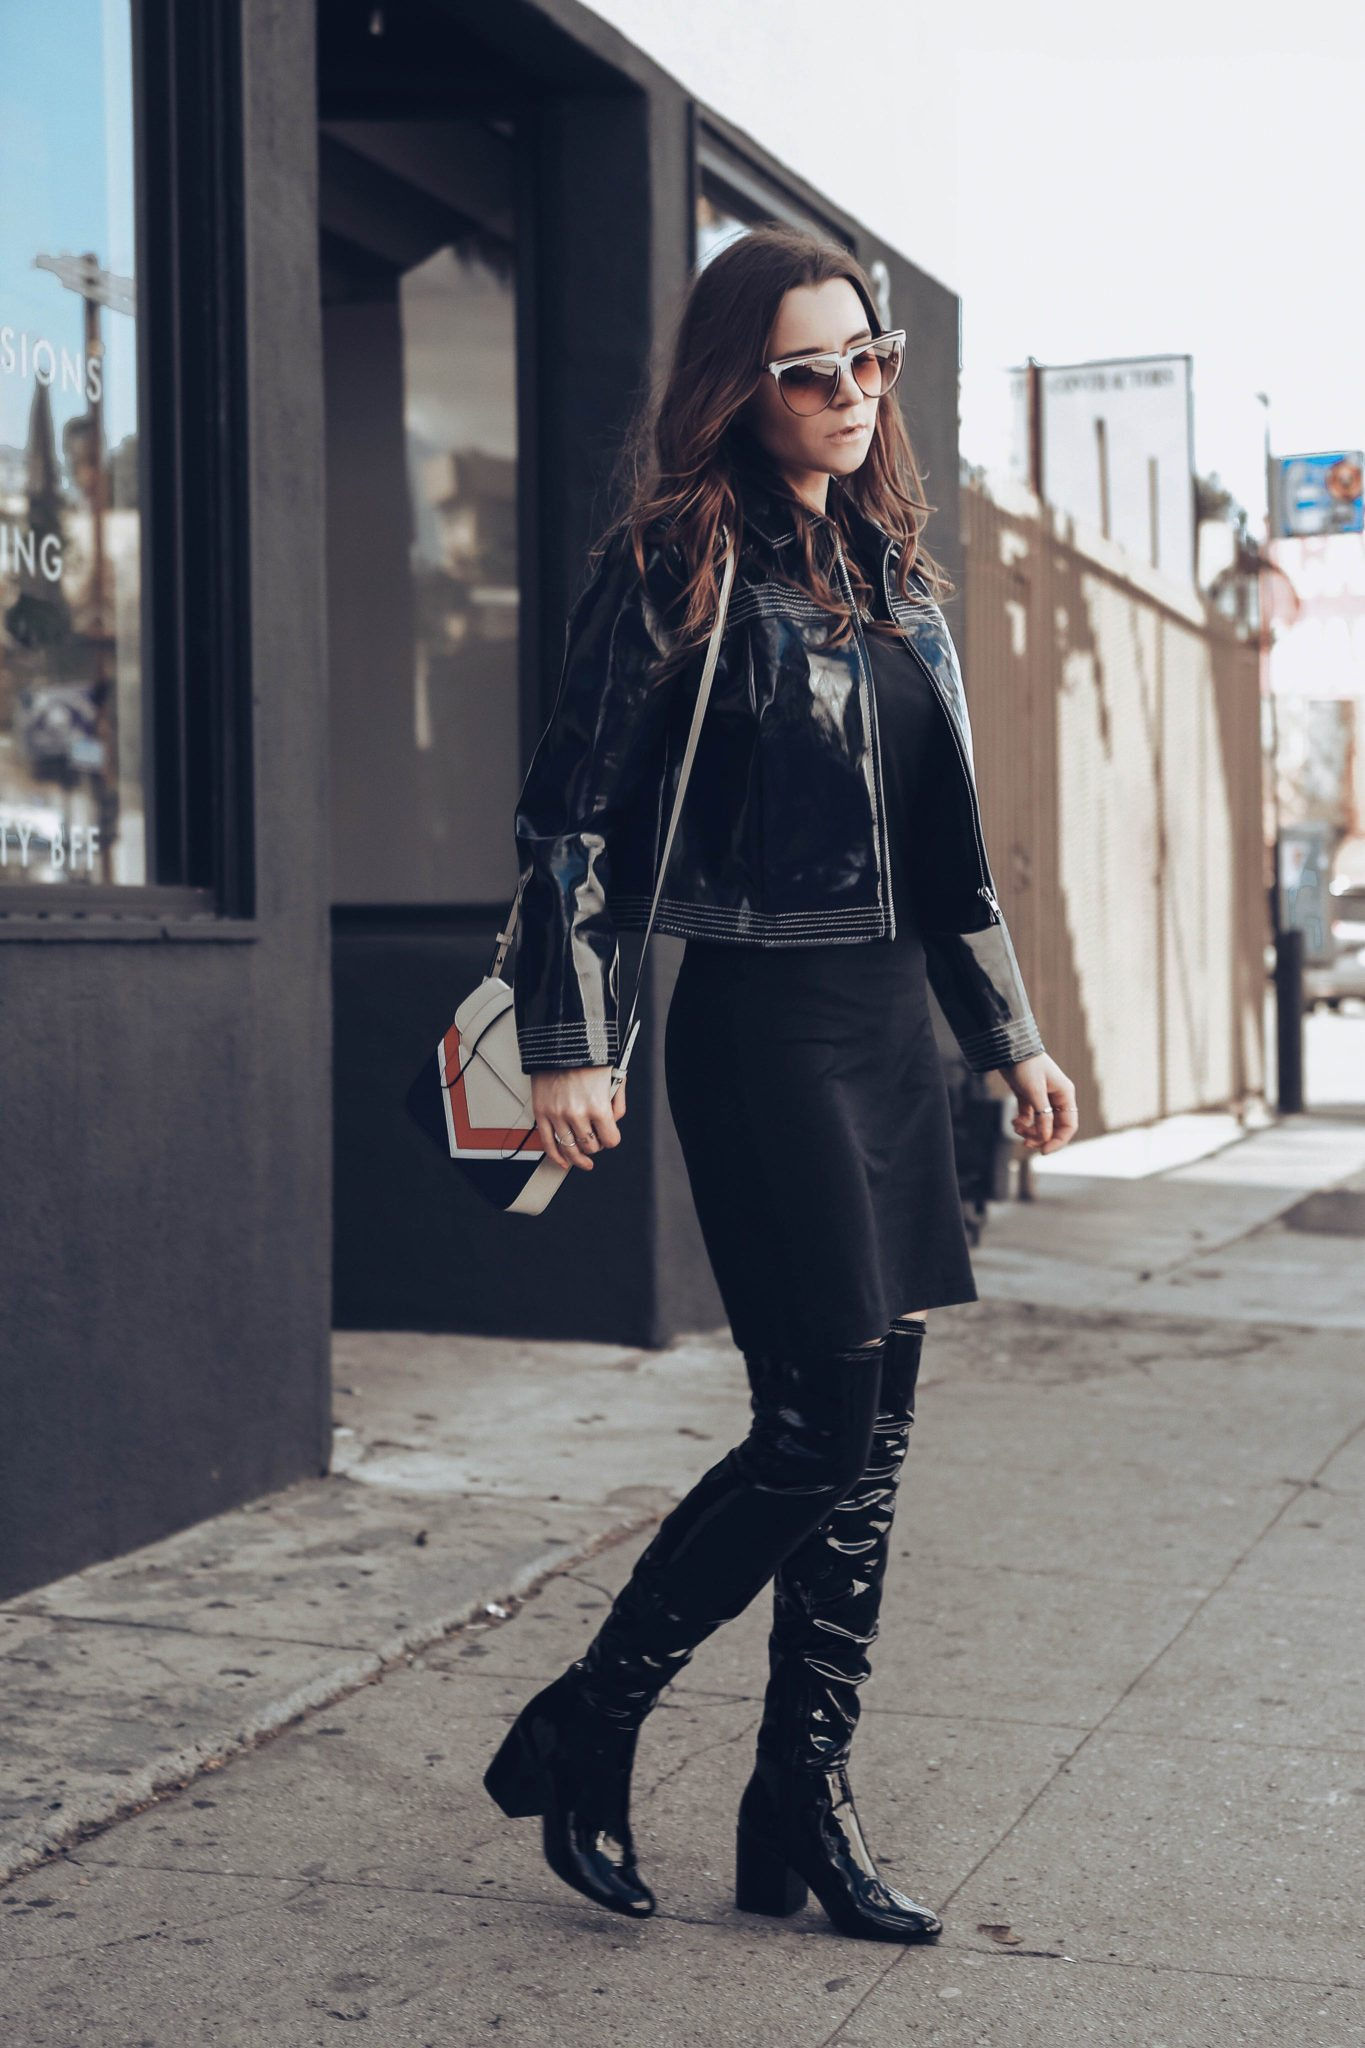 How to style Patent leather jacket and Patent leather boots - How to style the Vinyl trend. More on Houseofcomil.com - Blue Leather jacket by Ganni on If Chic, Nano MC Chevron Bag by Strathberry, Patent Leather Boots OTK by Aldo. Styled by Julia Comil French Fashion Blogger in Los Angeles